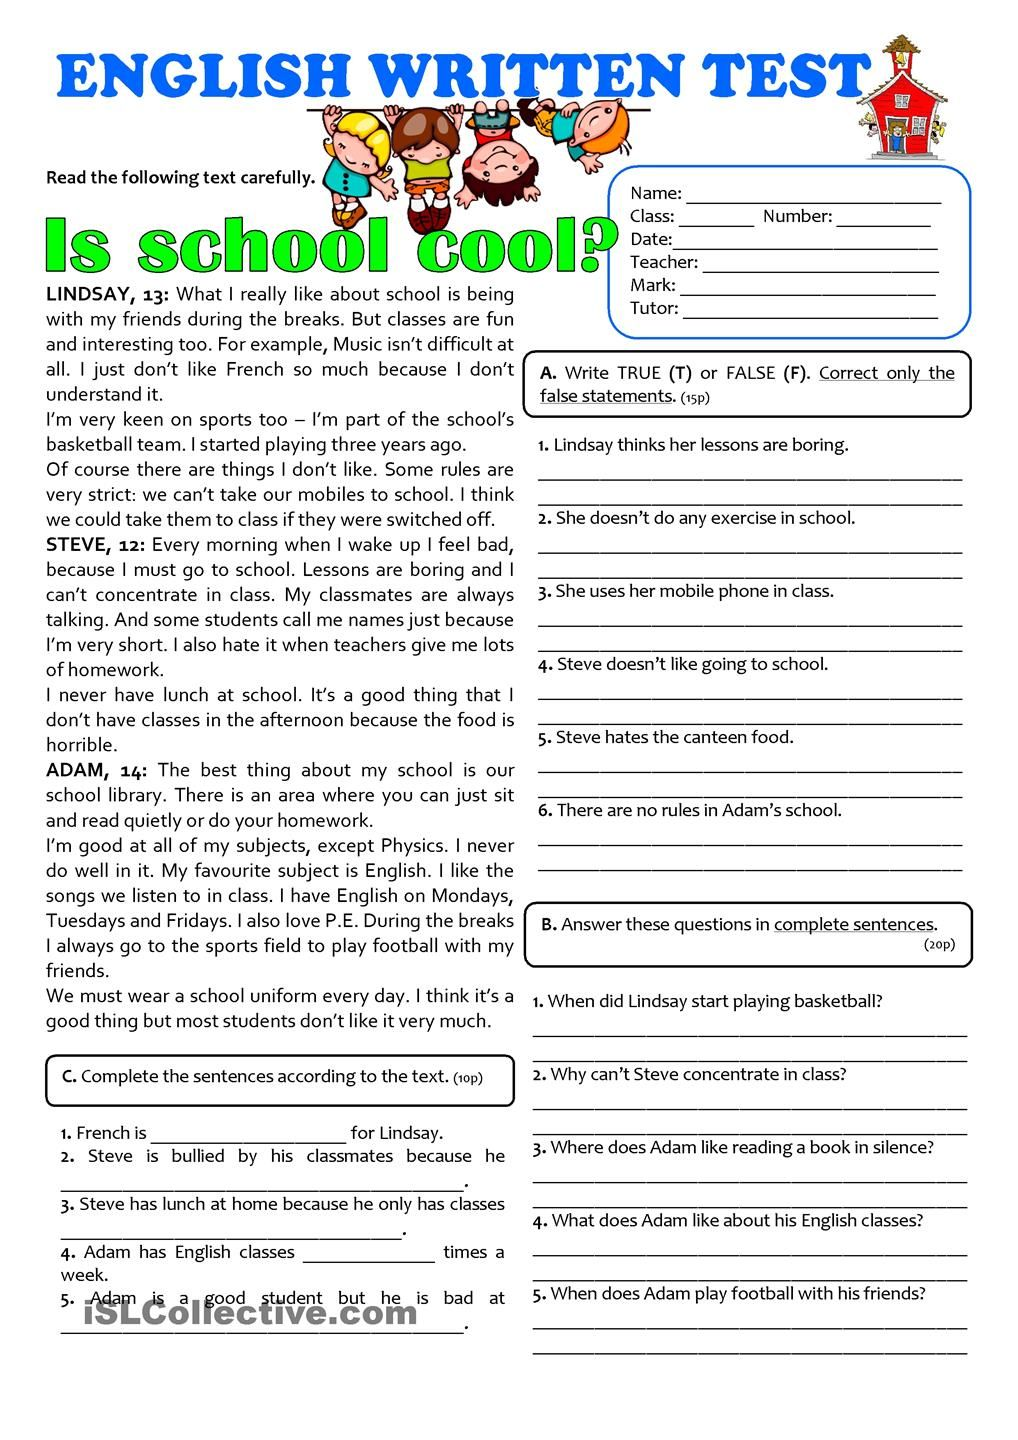 Is School Cool 7th Grade Test Worksheets Pinterest School